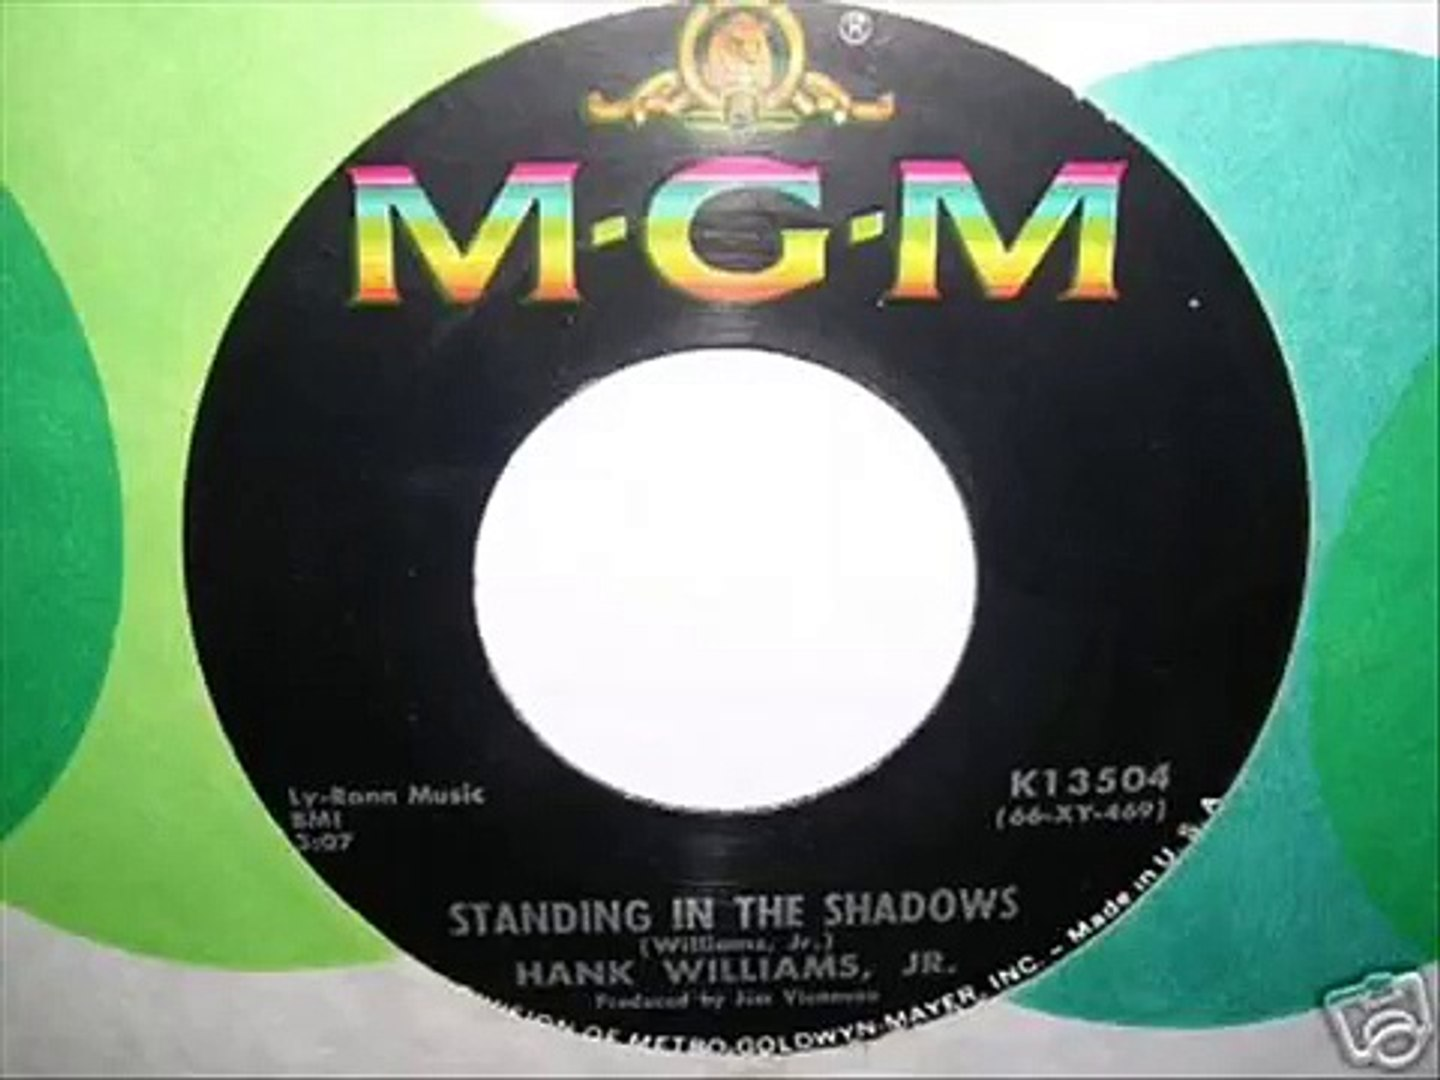 STANDING IN THE SHADOWS by HANK WILLIAMS JR.